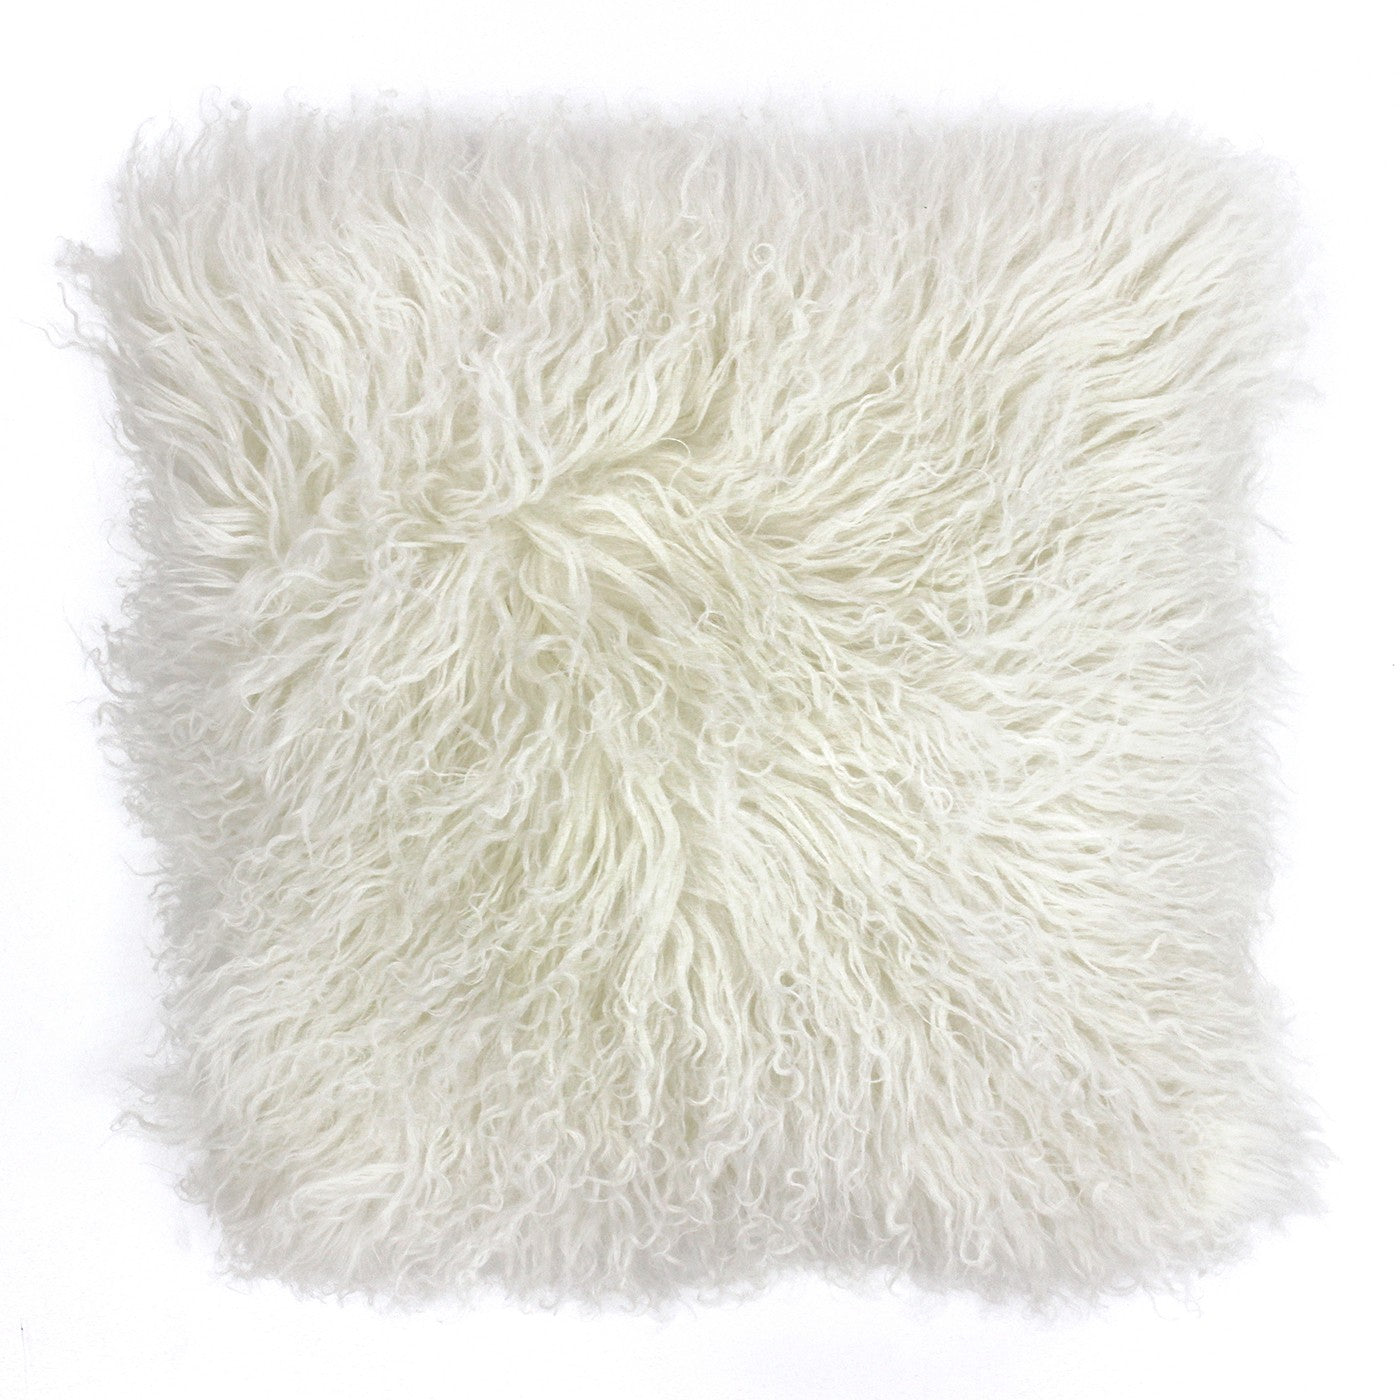 Mongolian Fluffy Wool Cushion - Pristine